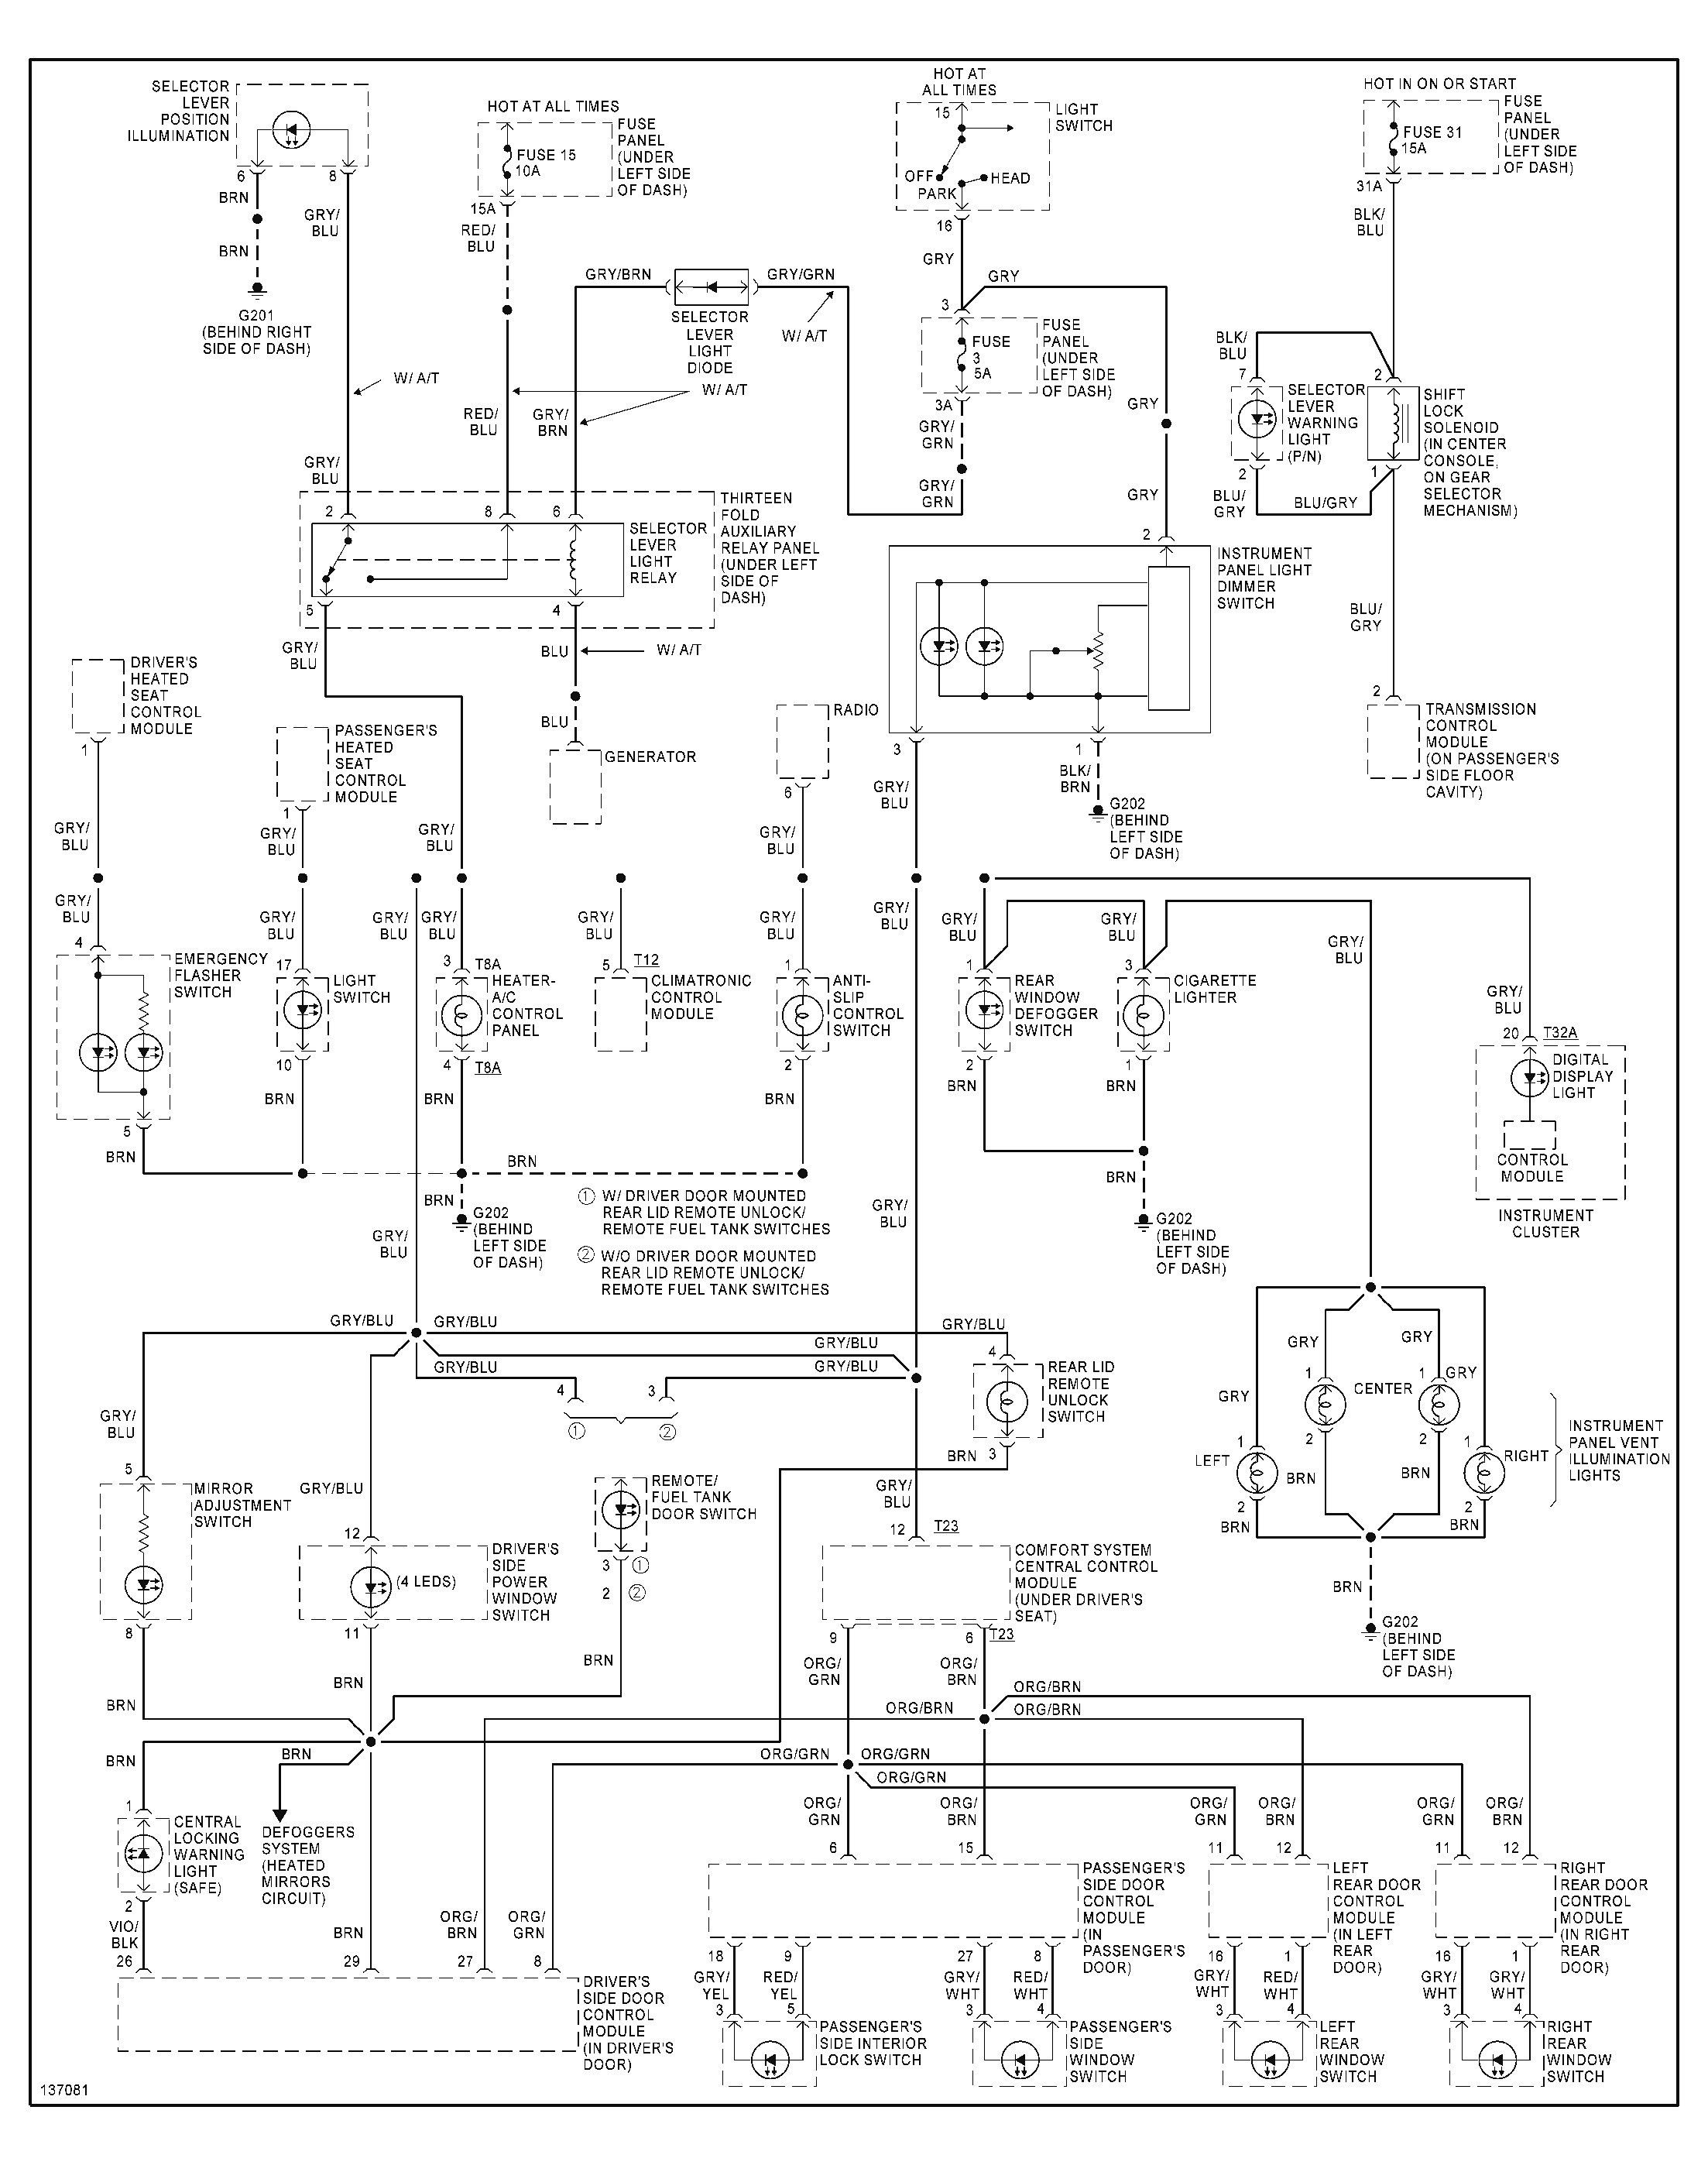 Unique Auto Electrical Diagram Diagram Wiringdiagram Diagramming Diagramm Visuals Visualisation Graphical Electrical Diagram Jeep Grand Diagram